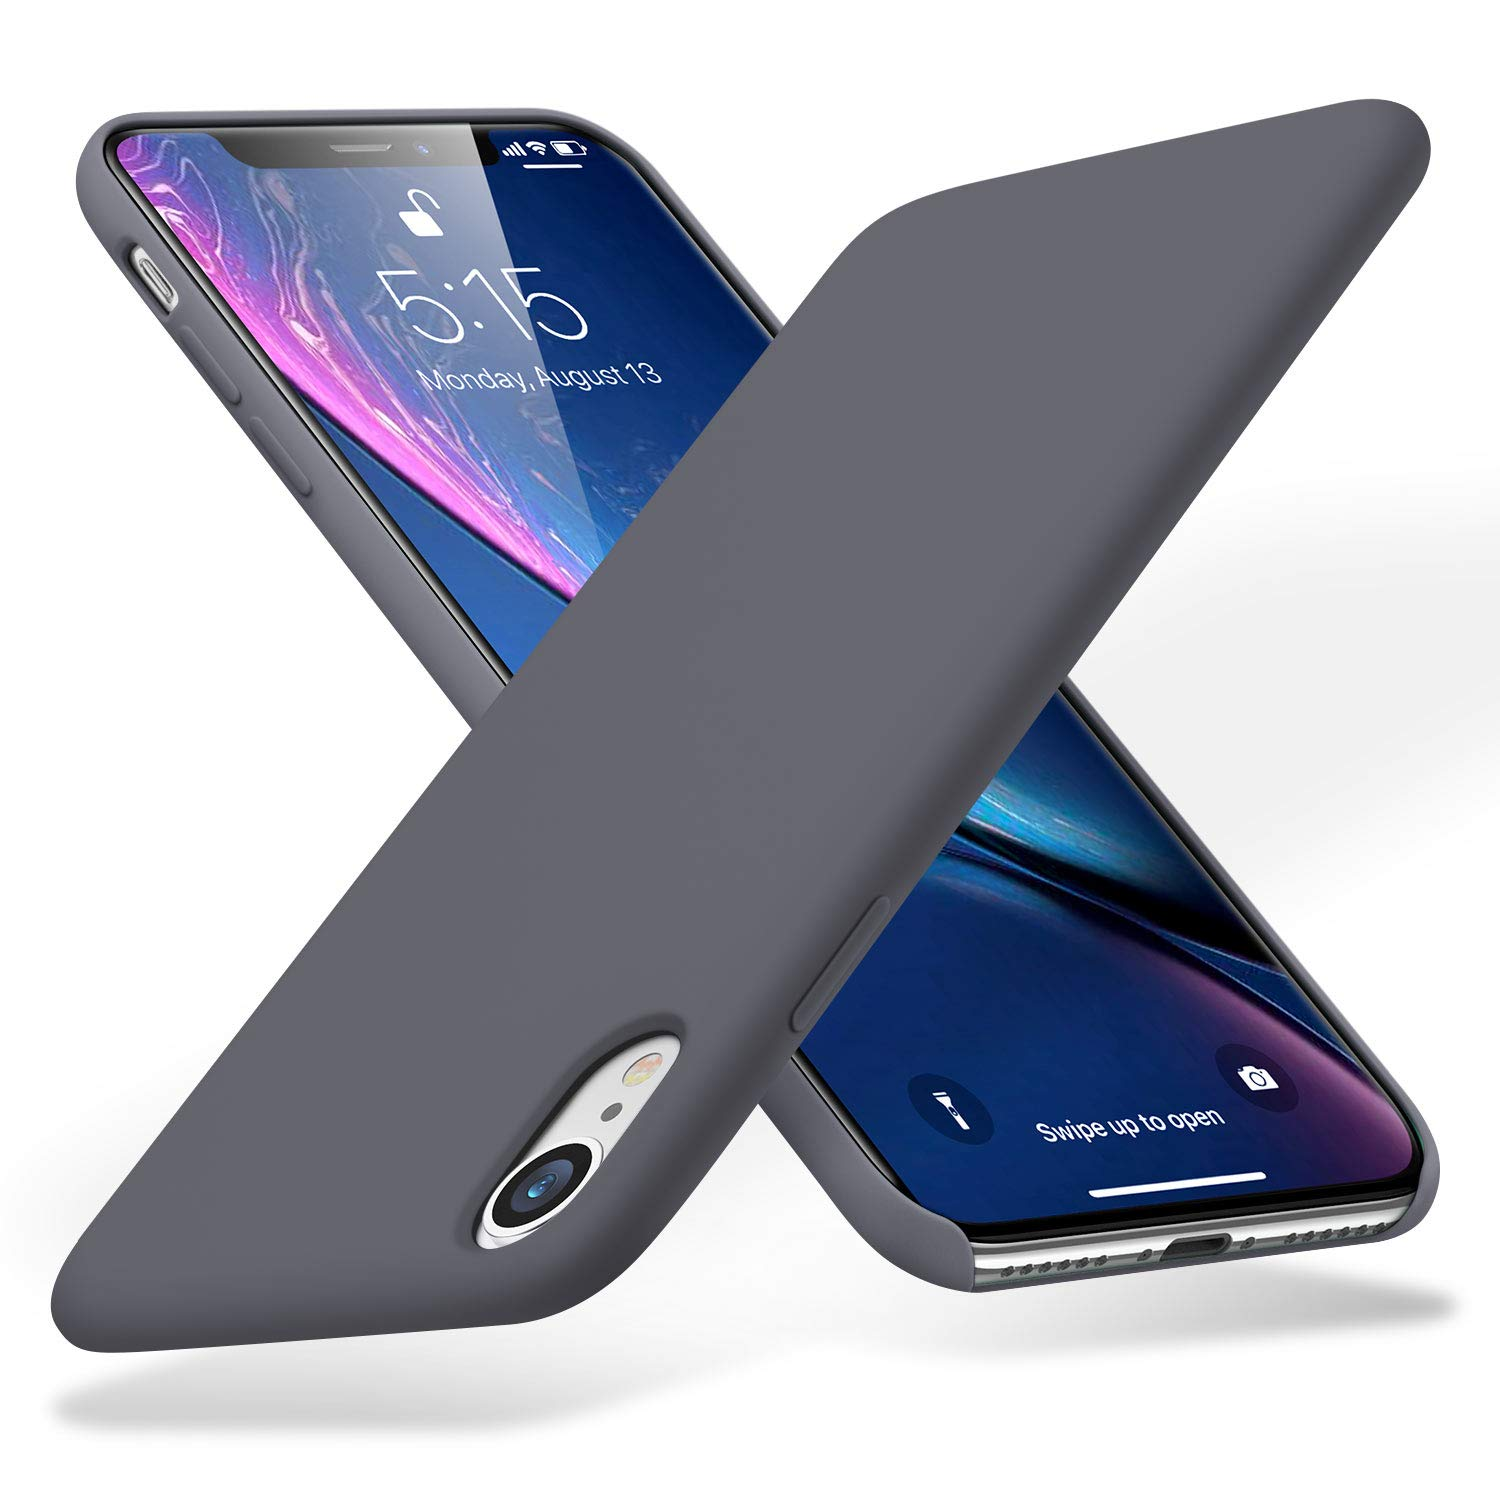 Funda Para iPhone Xr Esr (7g973nsg)